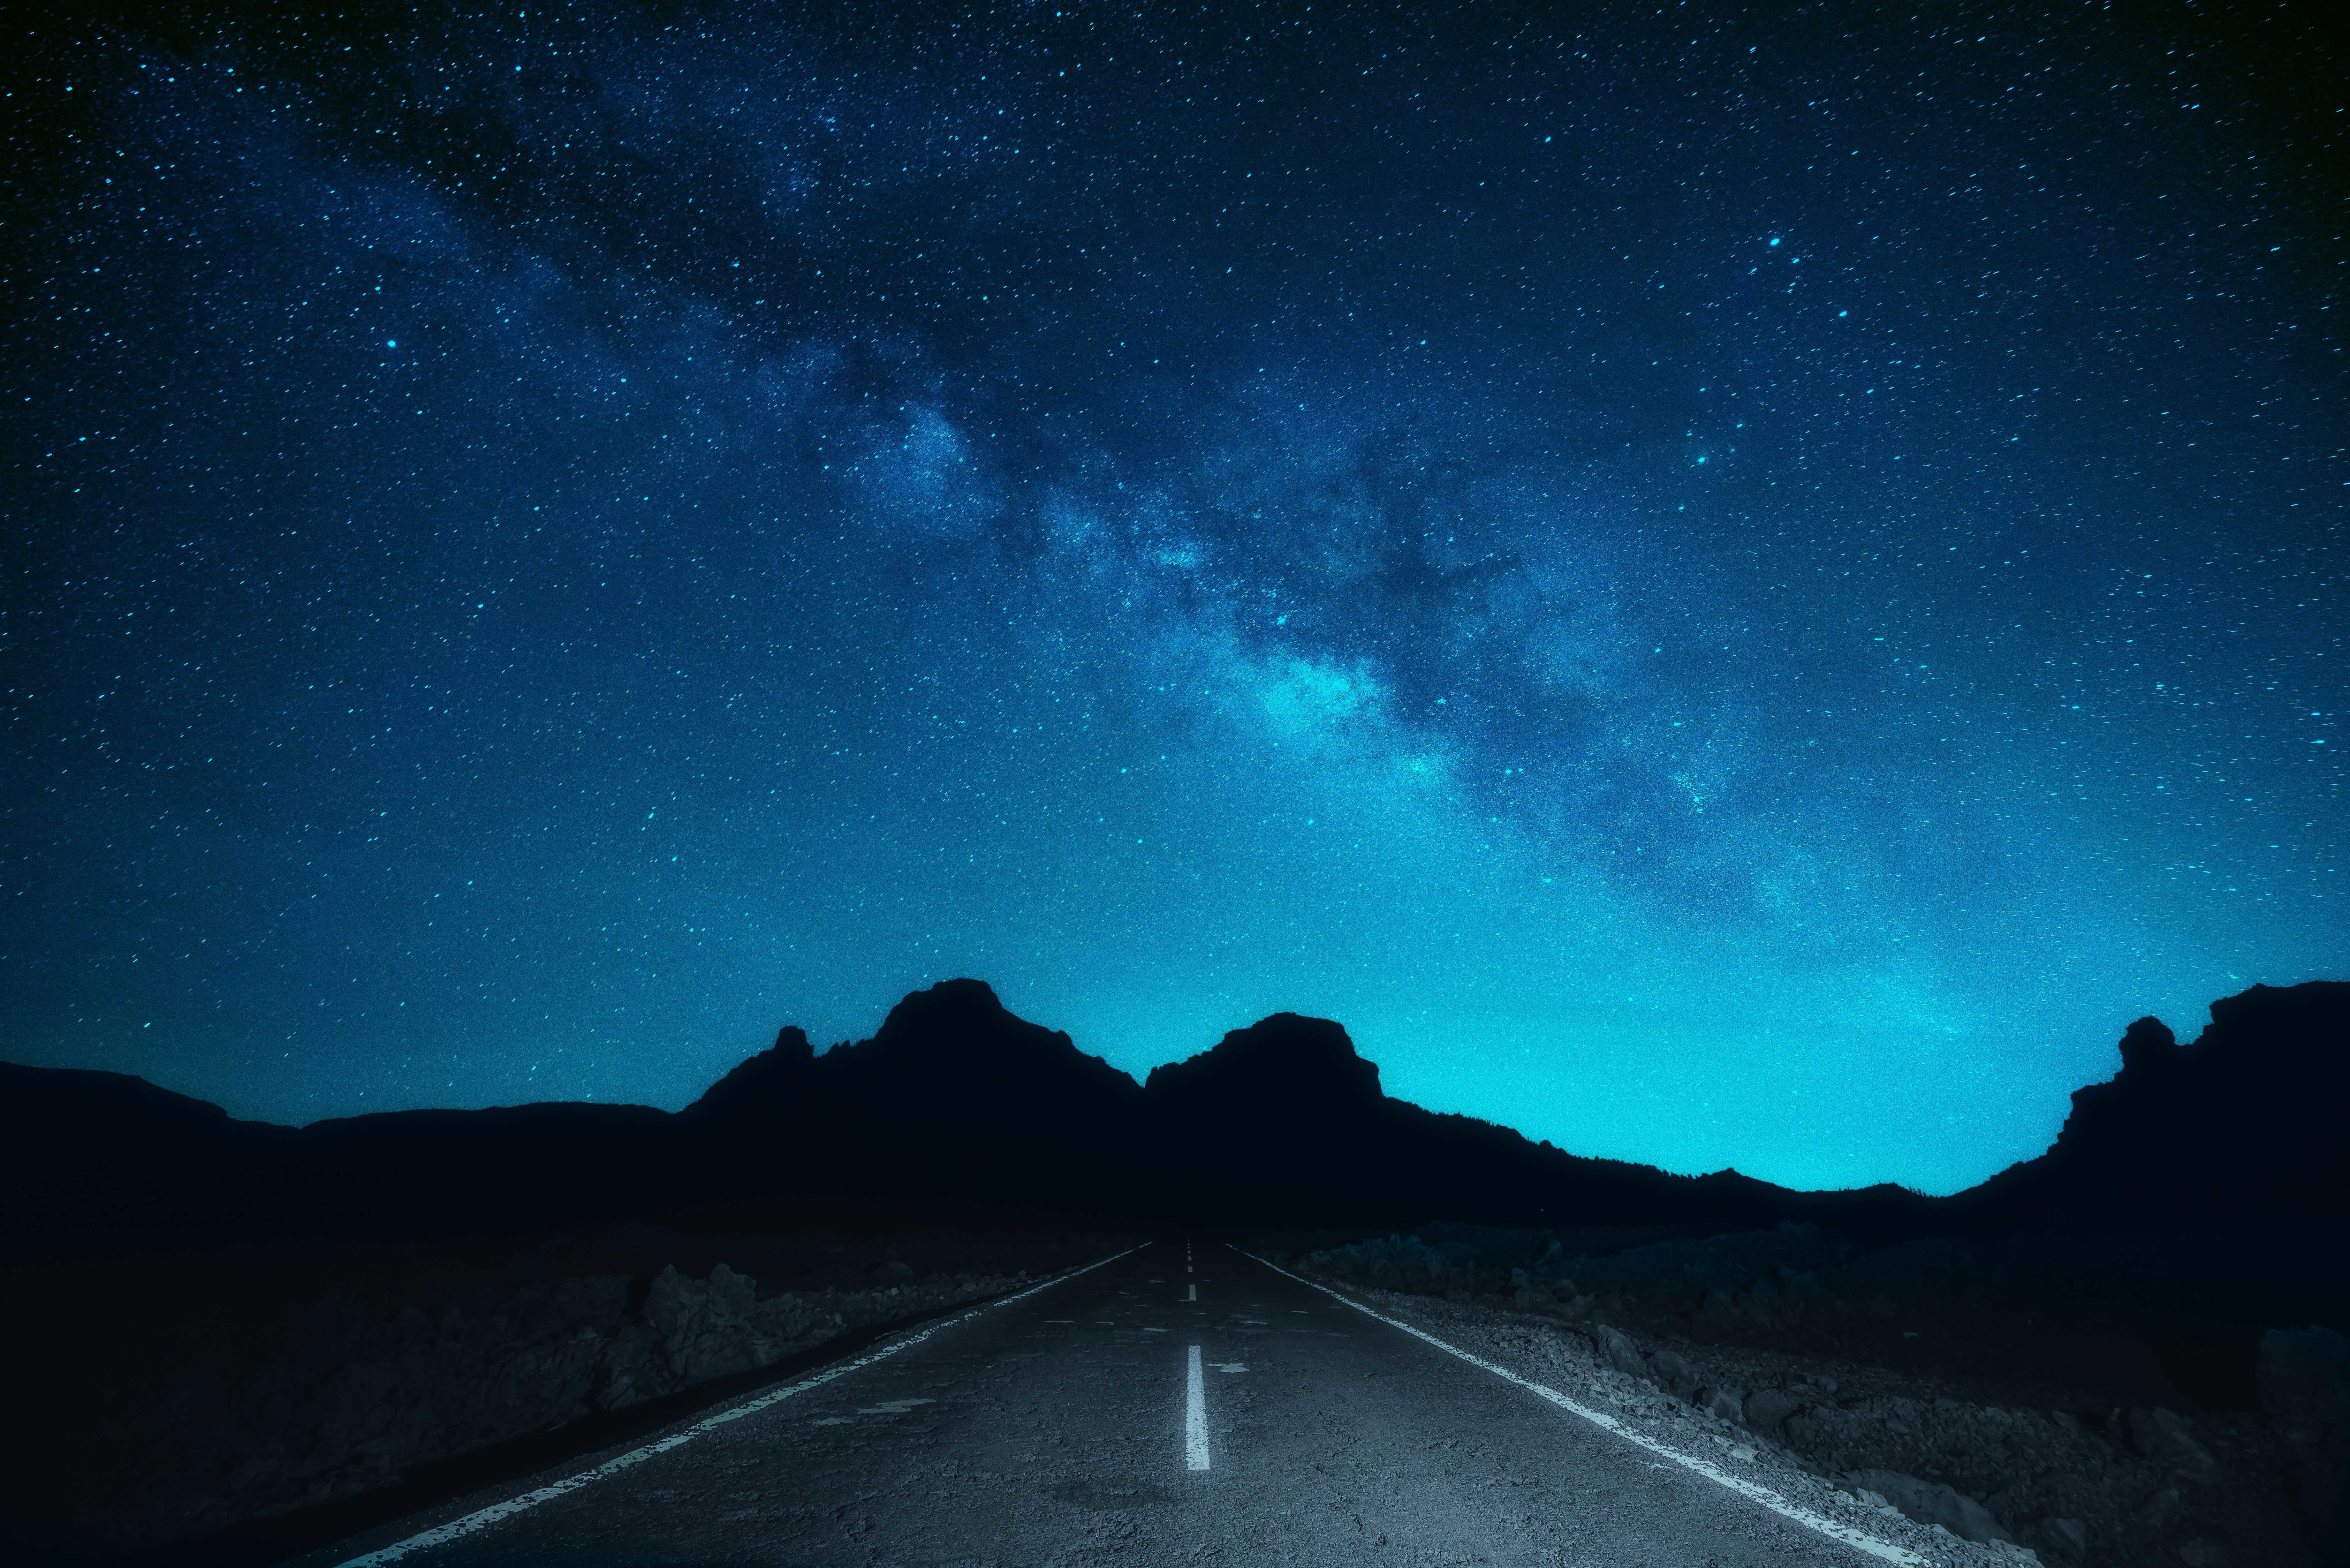 Road buttes silhouette the milky way stars space wallpaper - Space wallpaper road ...